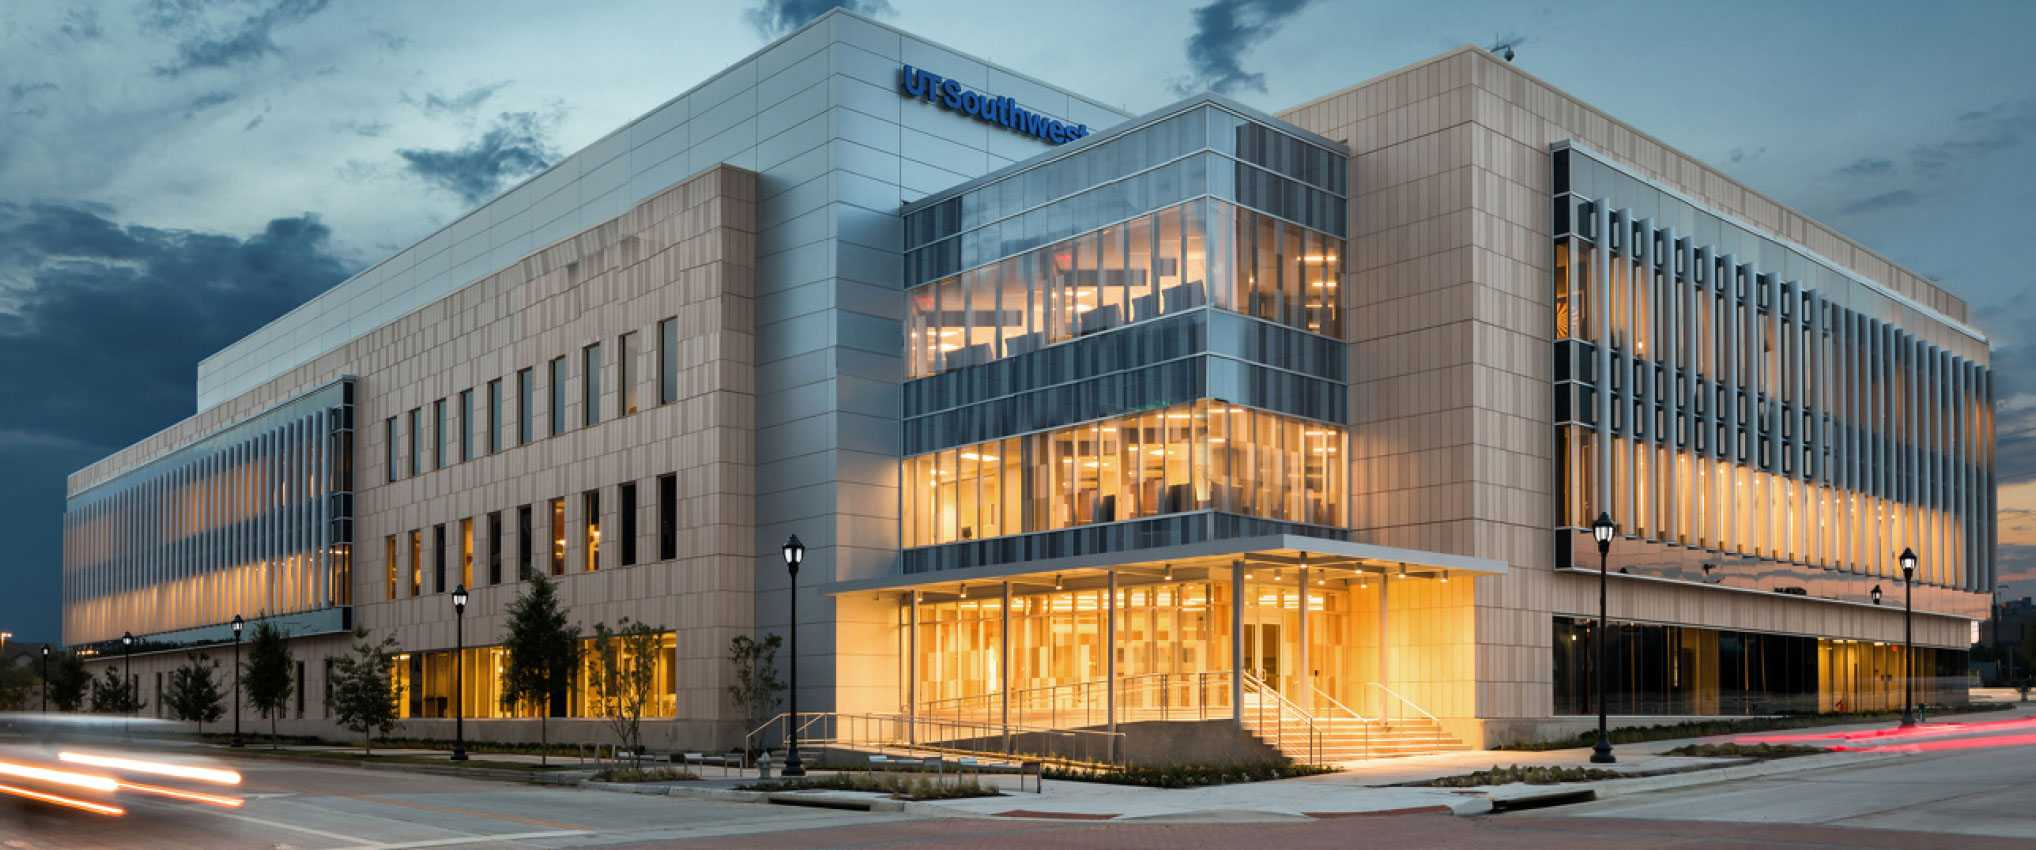 Moncrief Medical Center